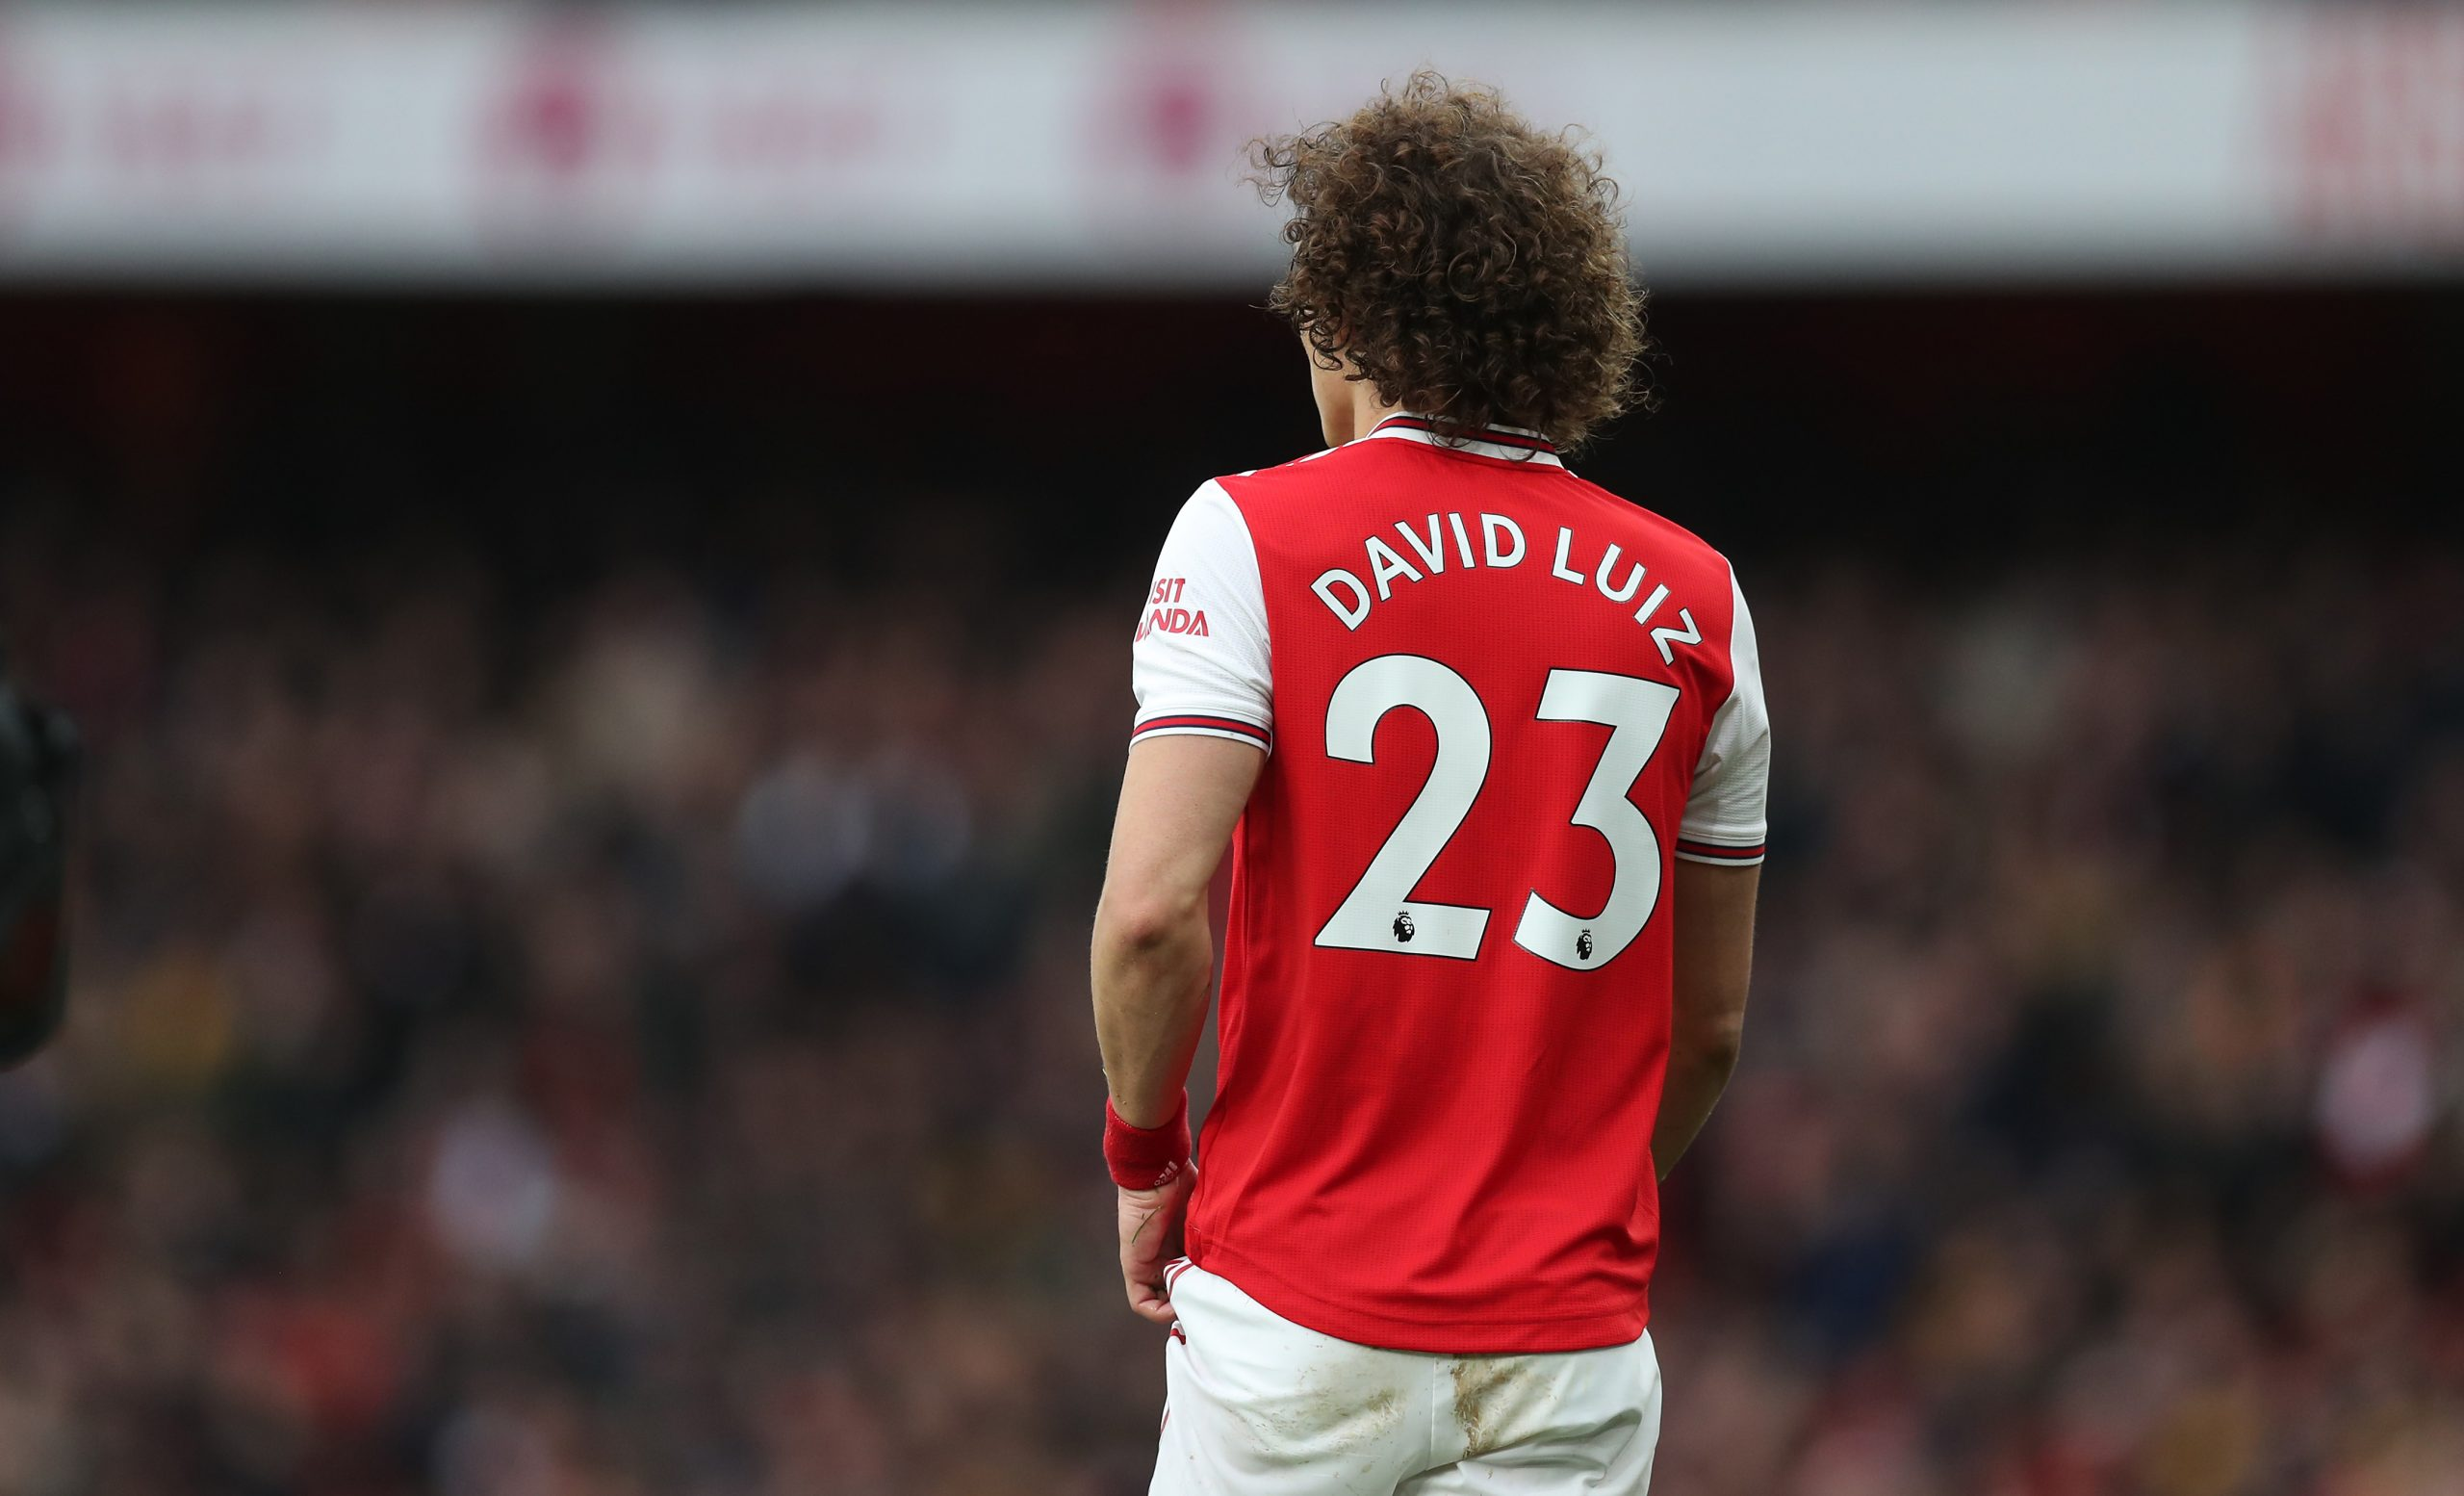 David Luiz of Arsenal during the Premier League match between Arsenal FC and West Ham United at Emirates Stadium on March 07, 2020 in London, United Kingdom.